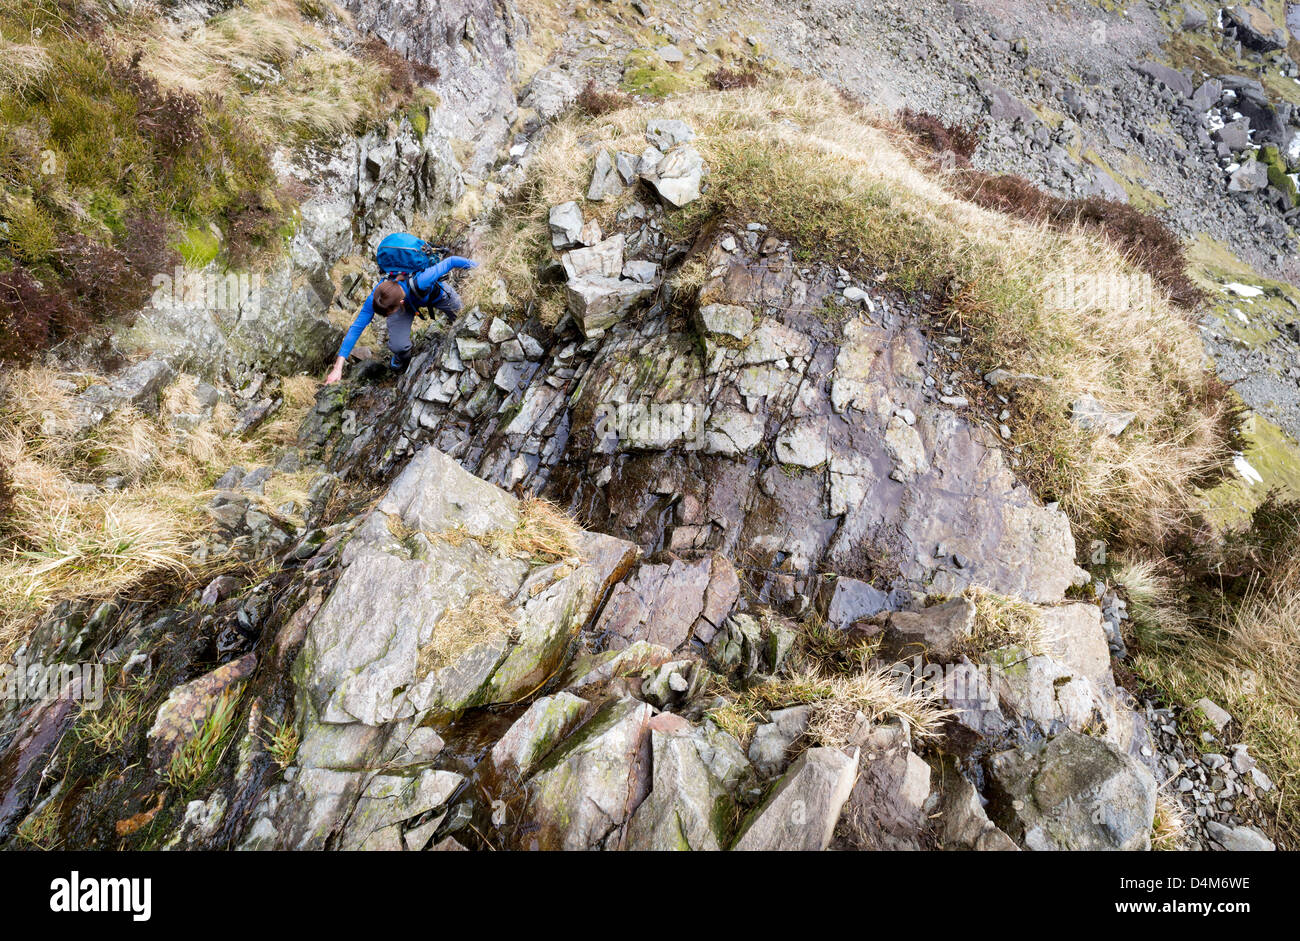 A hiker ascending Jack's Rake on Pavey Ark in the Lake District. - Stock Image